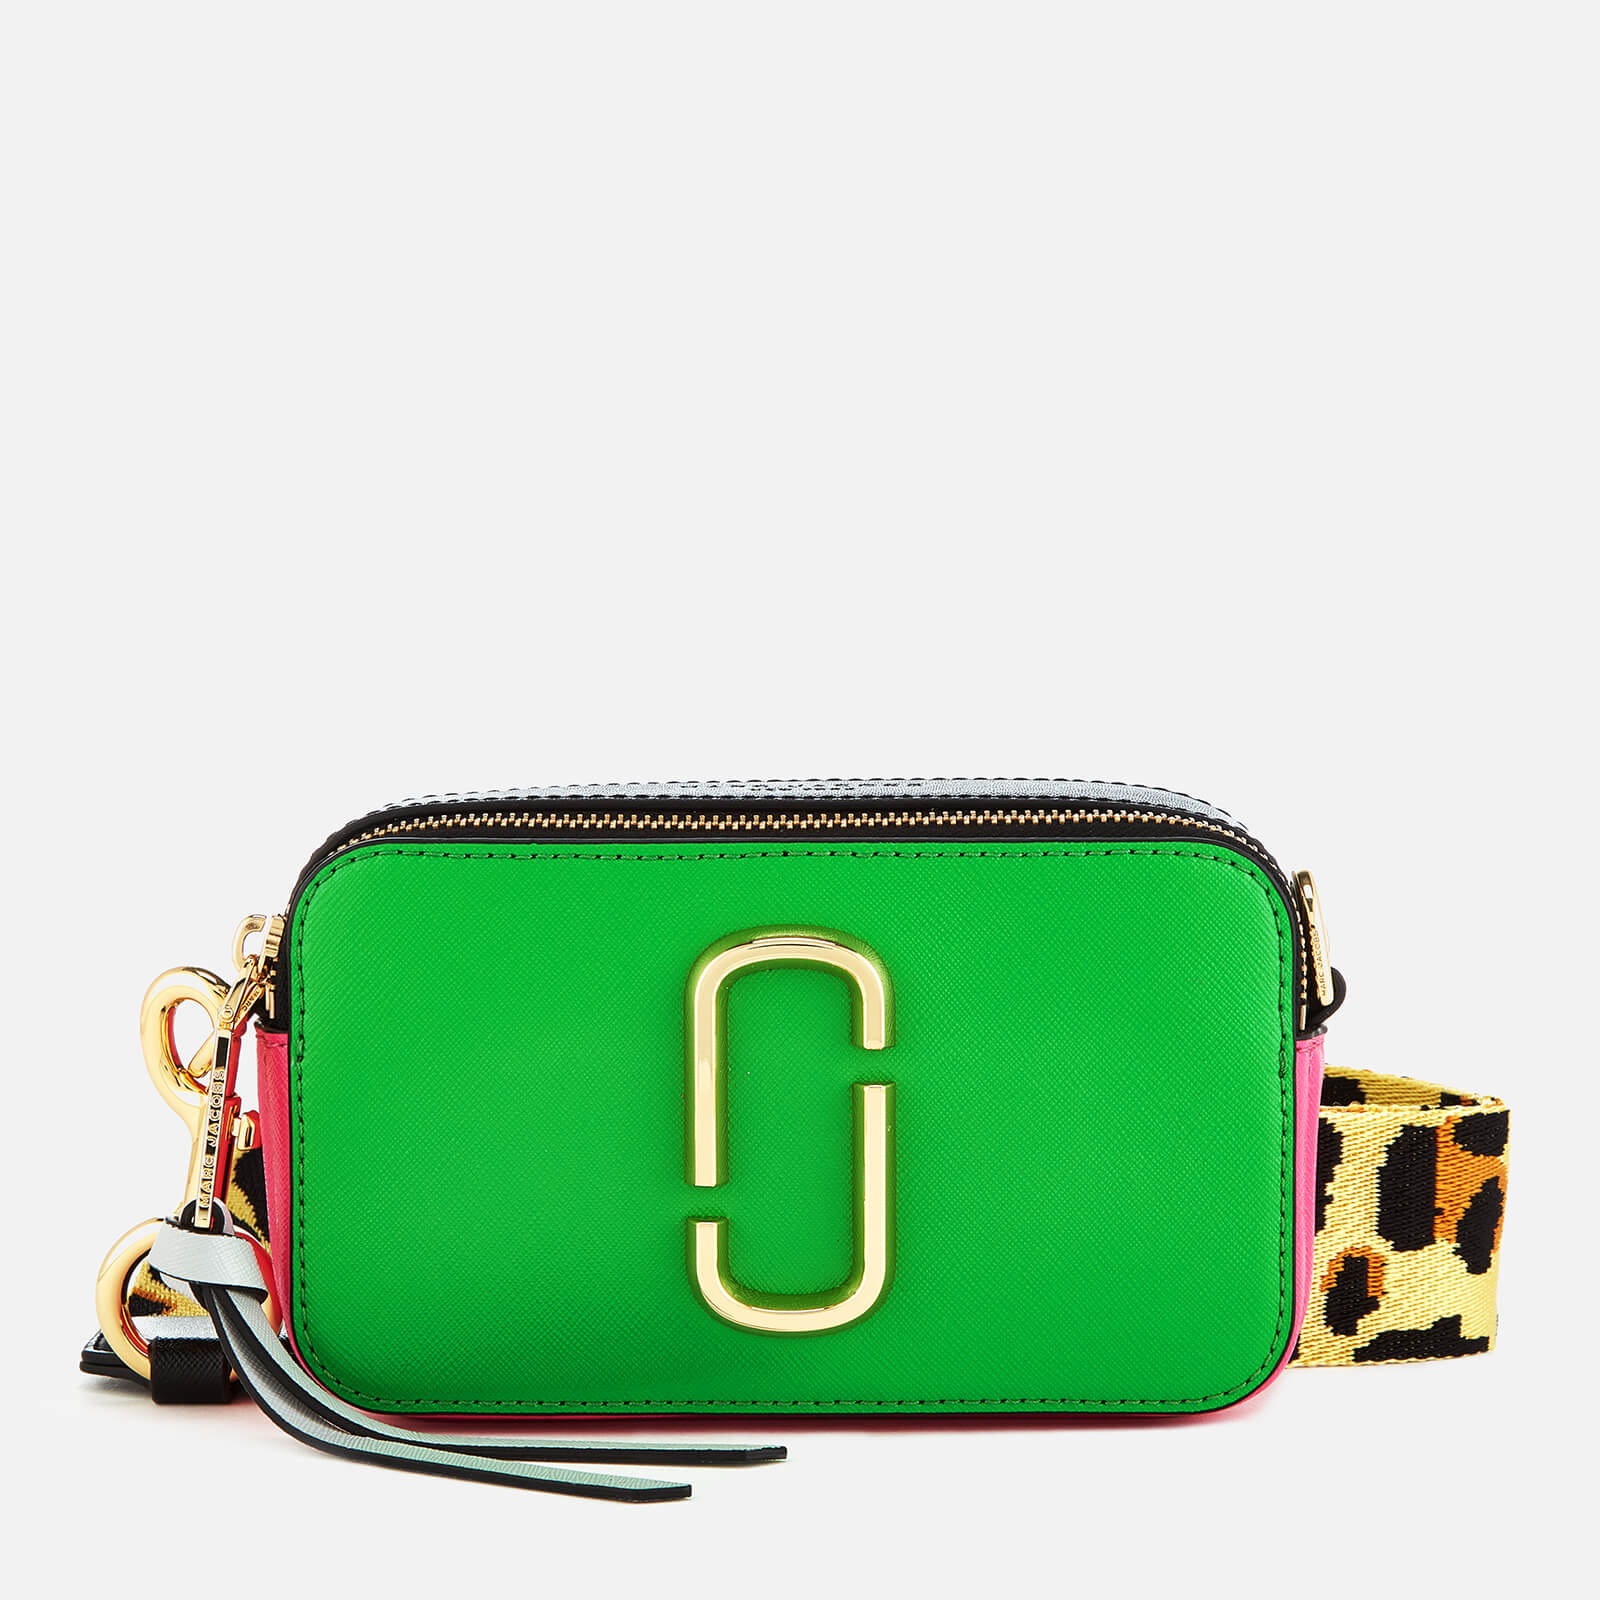 12d7aba918bc Marc Jacobs Women s Snapshot Cross Body Bag - Jade - Free UK Delivery over  £50